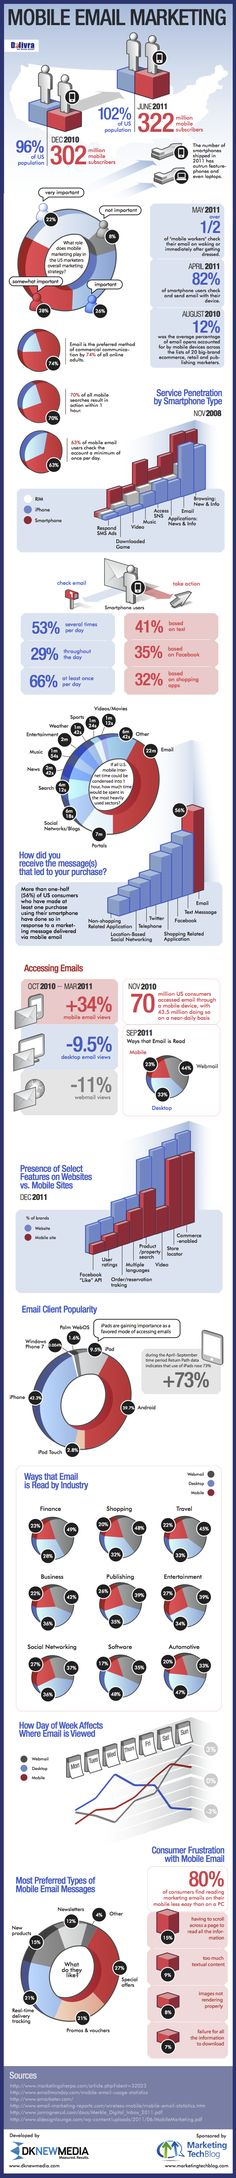 Mobile Email Marketing Statistics #infographic @inmobi @mktgtechblog